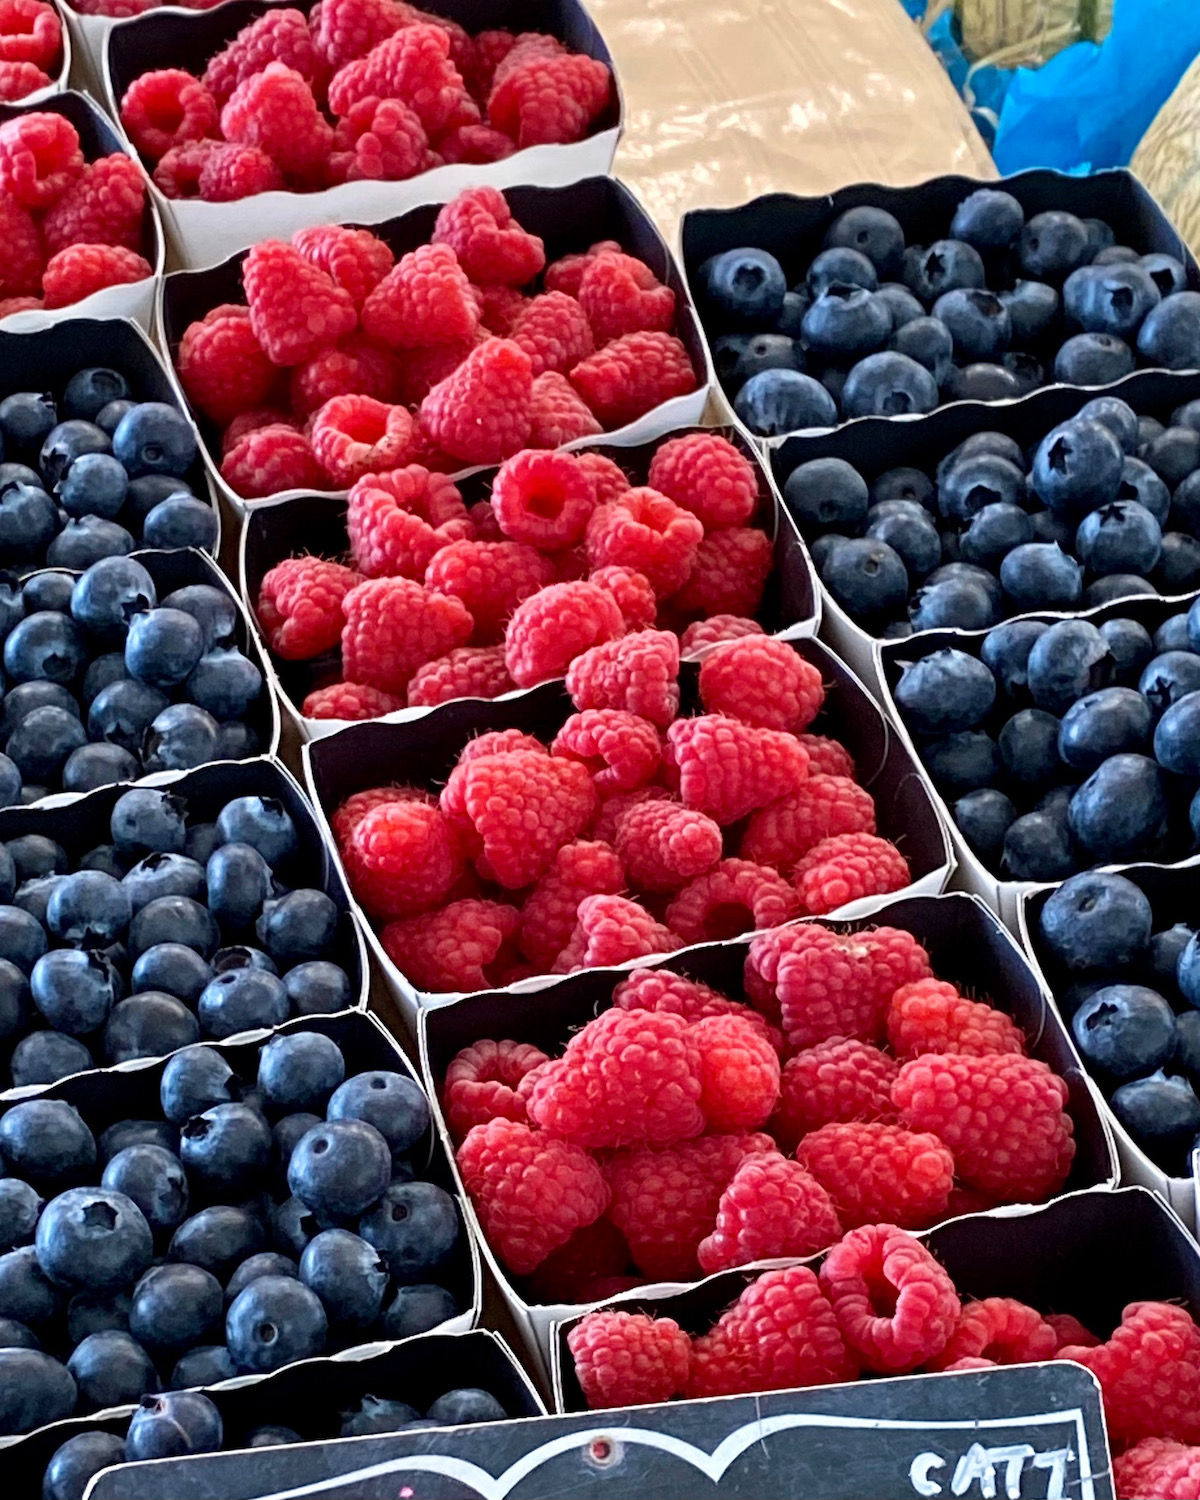 french berries at the market